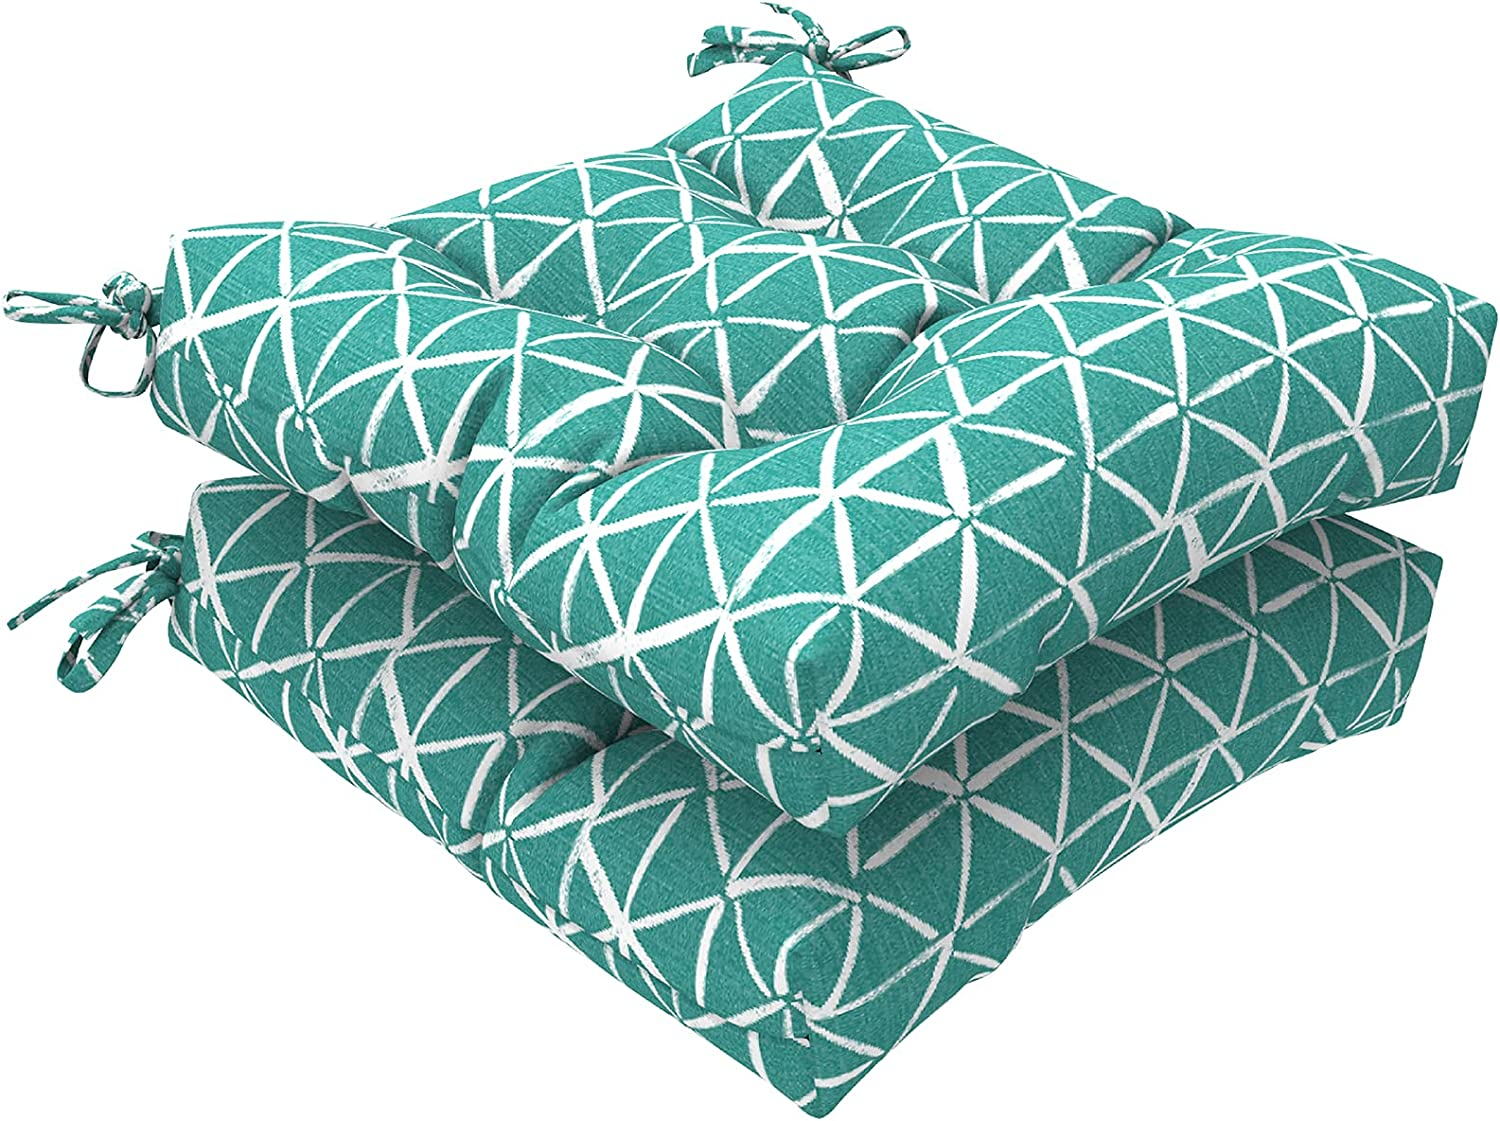 """LVTXIII Outdoor Seat Cushions Square Tufted Chair Cushions, Patio Furniture Decorative Cushions (19""""x19""""x5"""", Geomentry Green ,2 Pack)"""